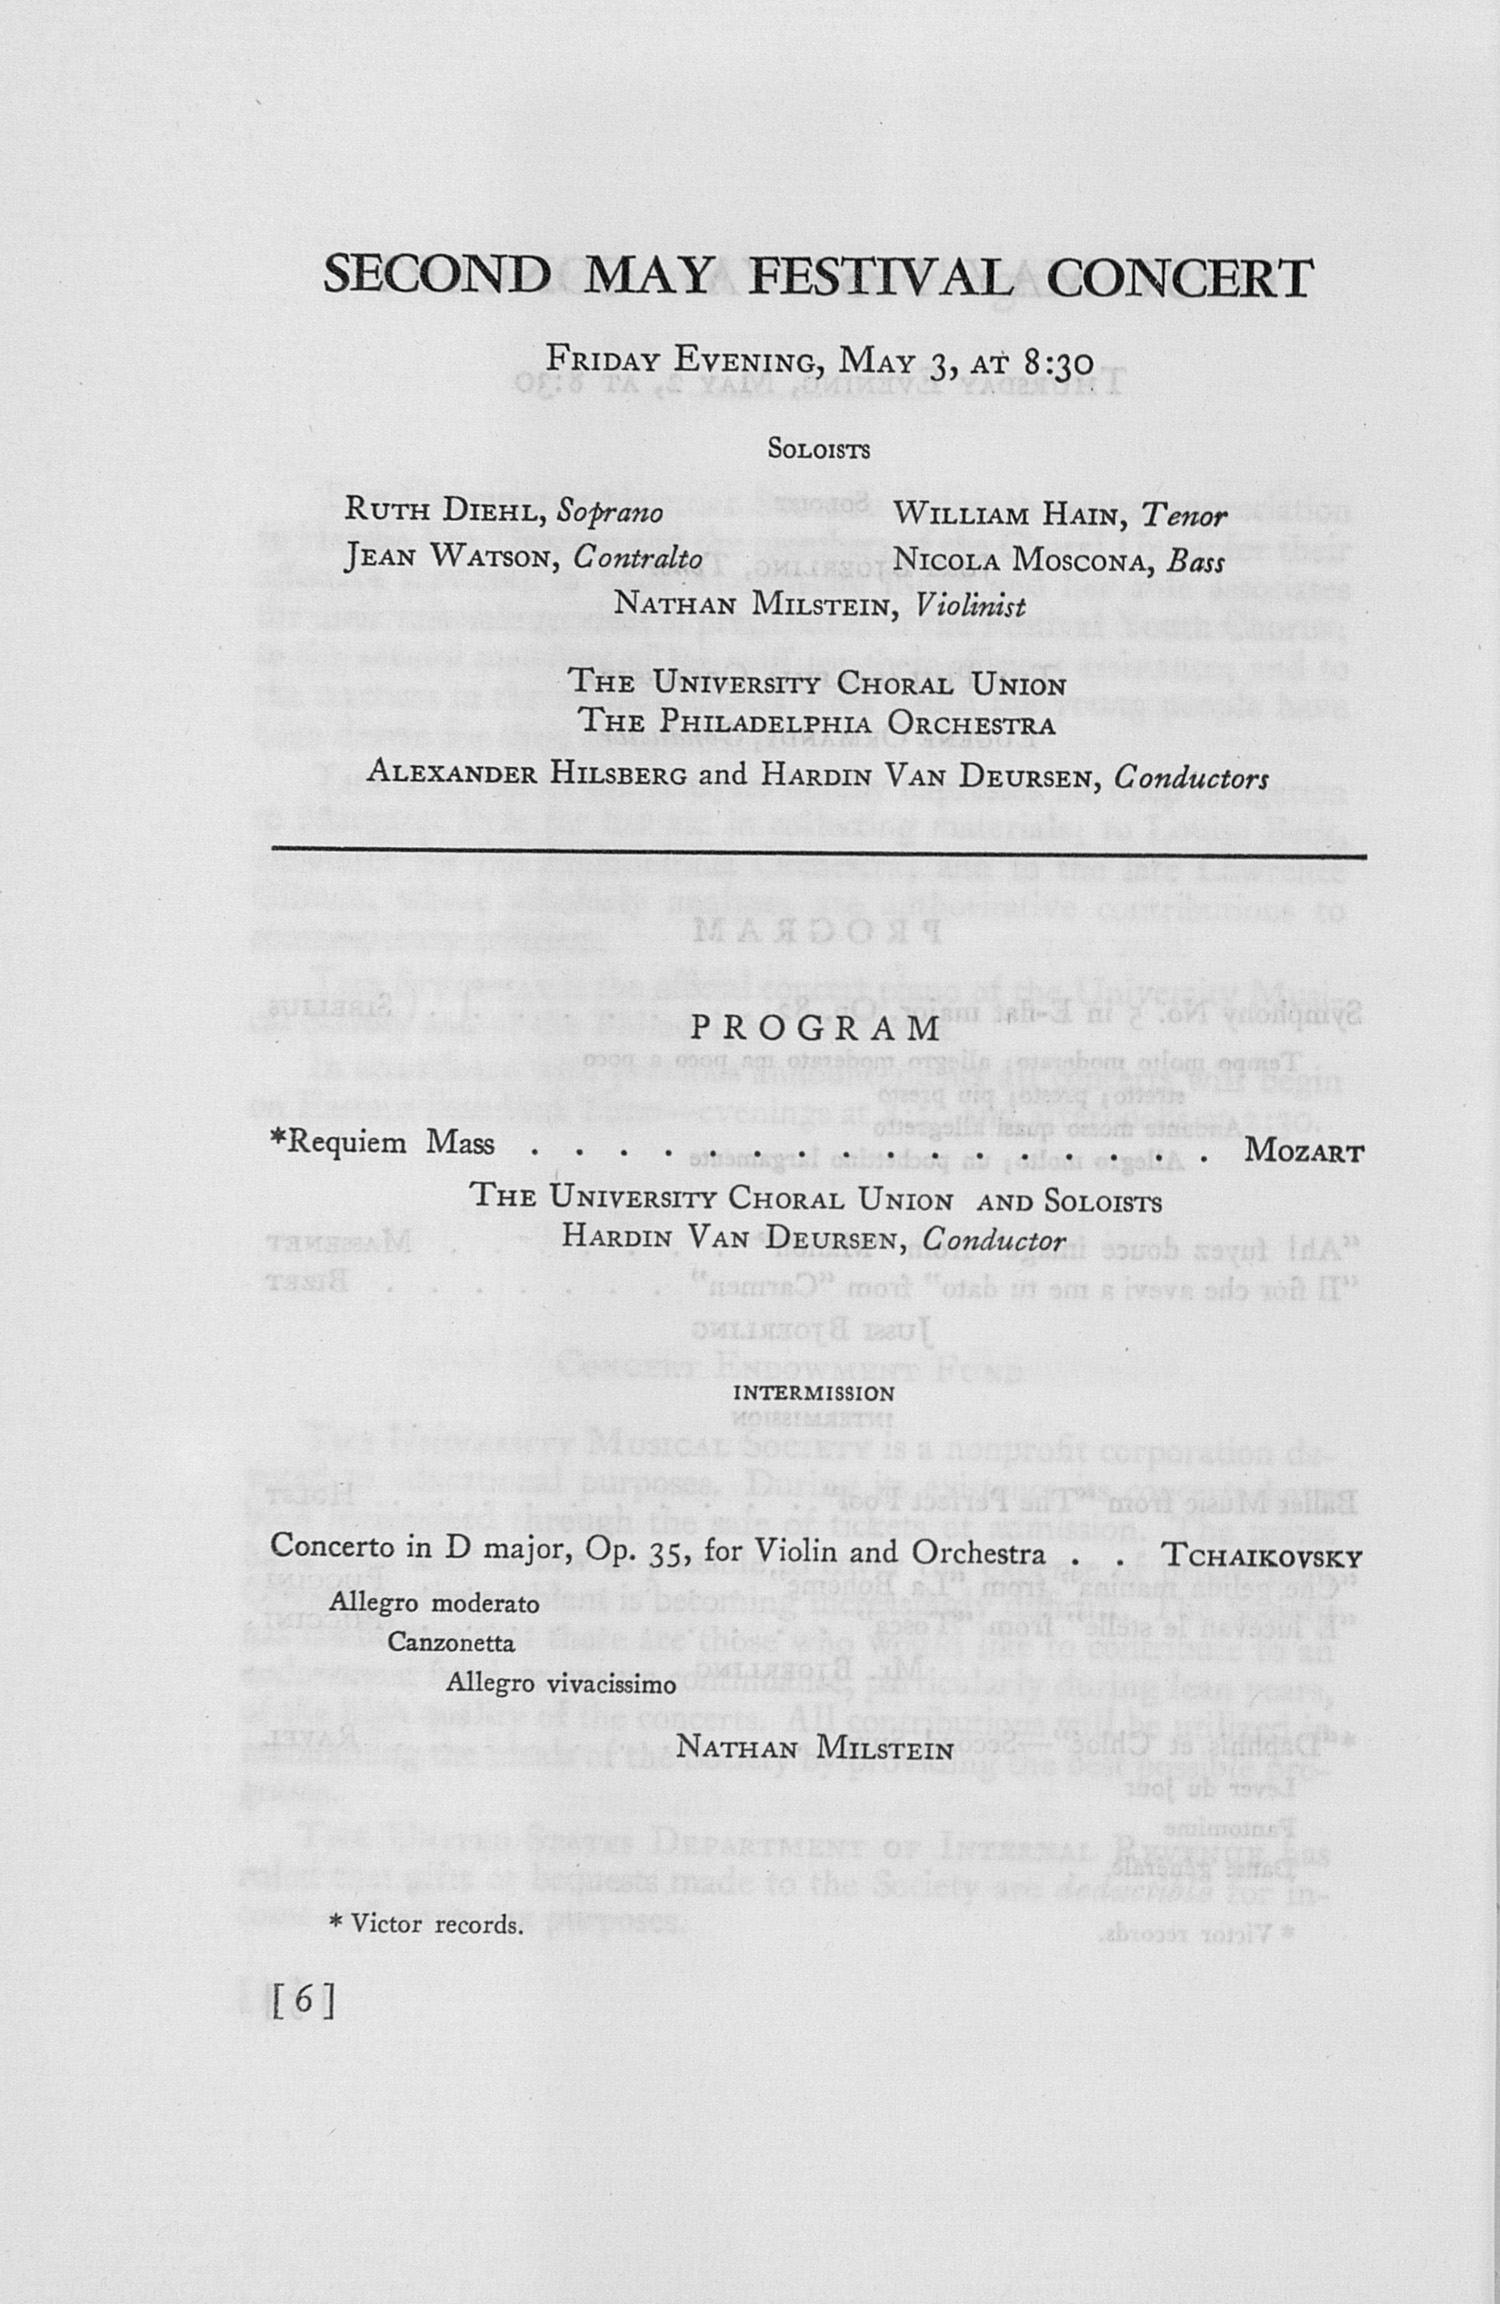 UMS Concert Program, May 2, 3, 4, And 5, 1946: The Fifty-third Annual May Festival -- Glenn D. Mcgeoch image